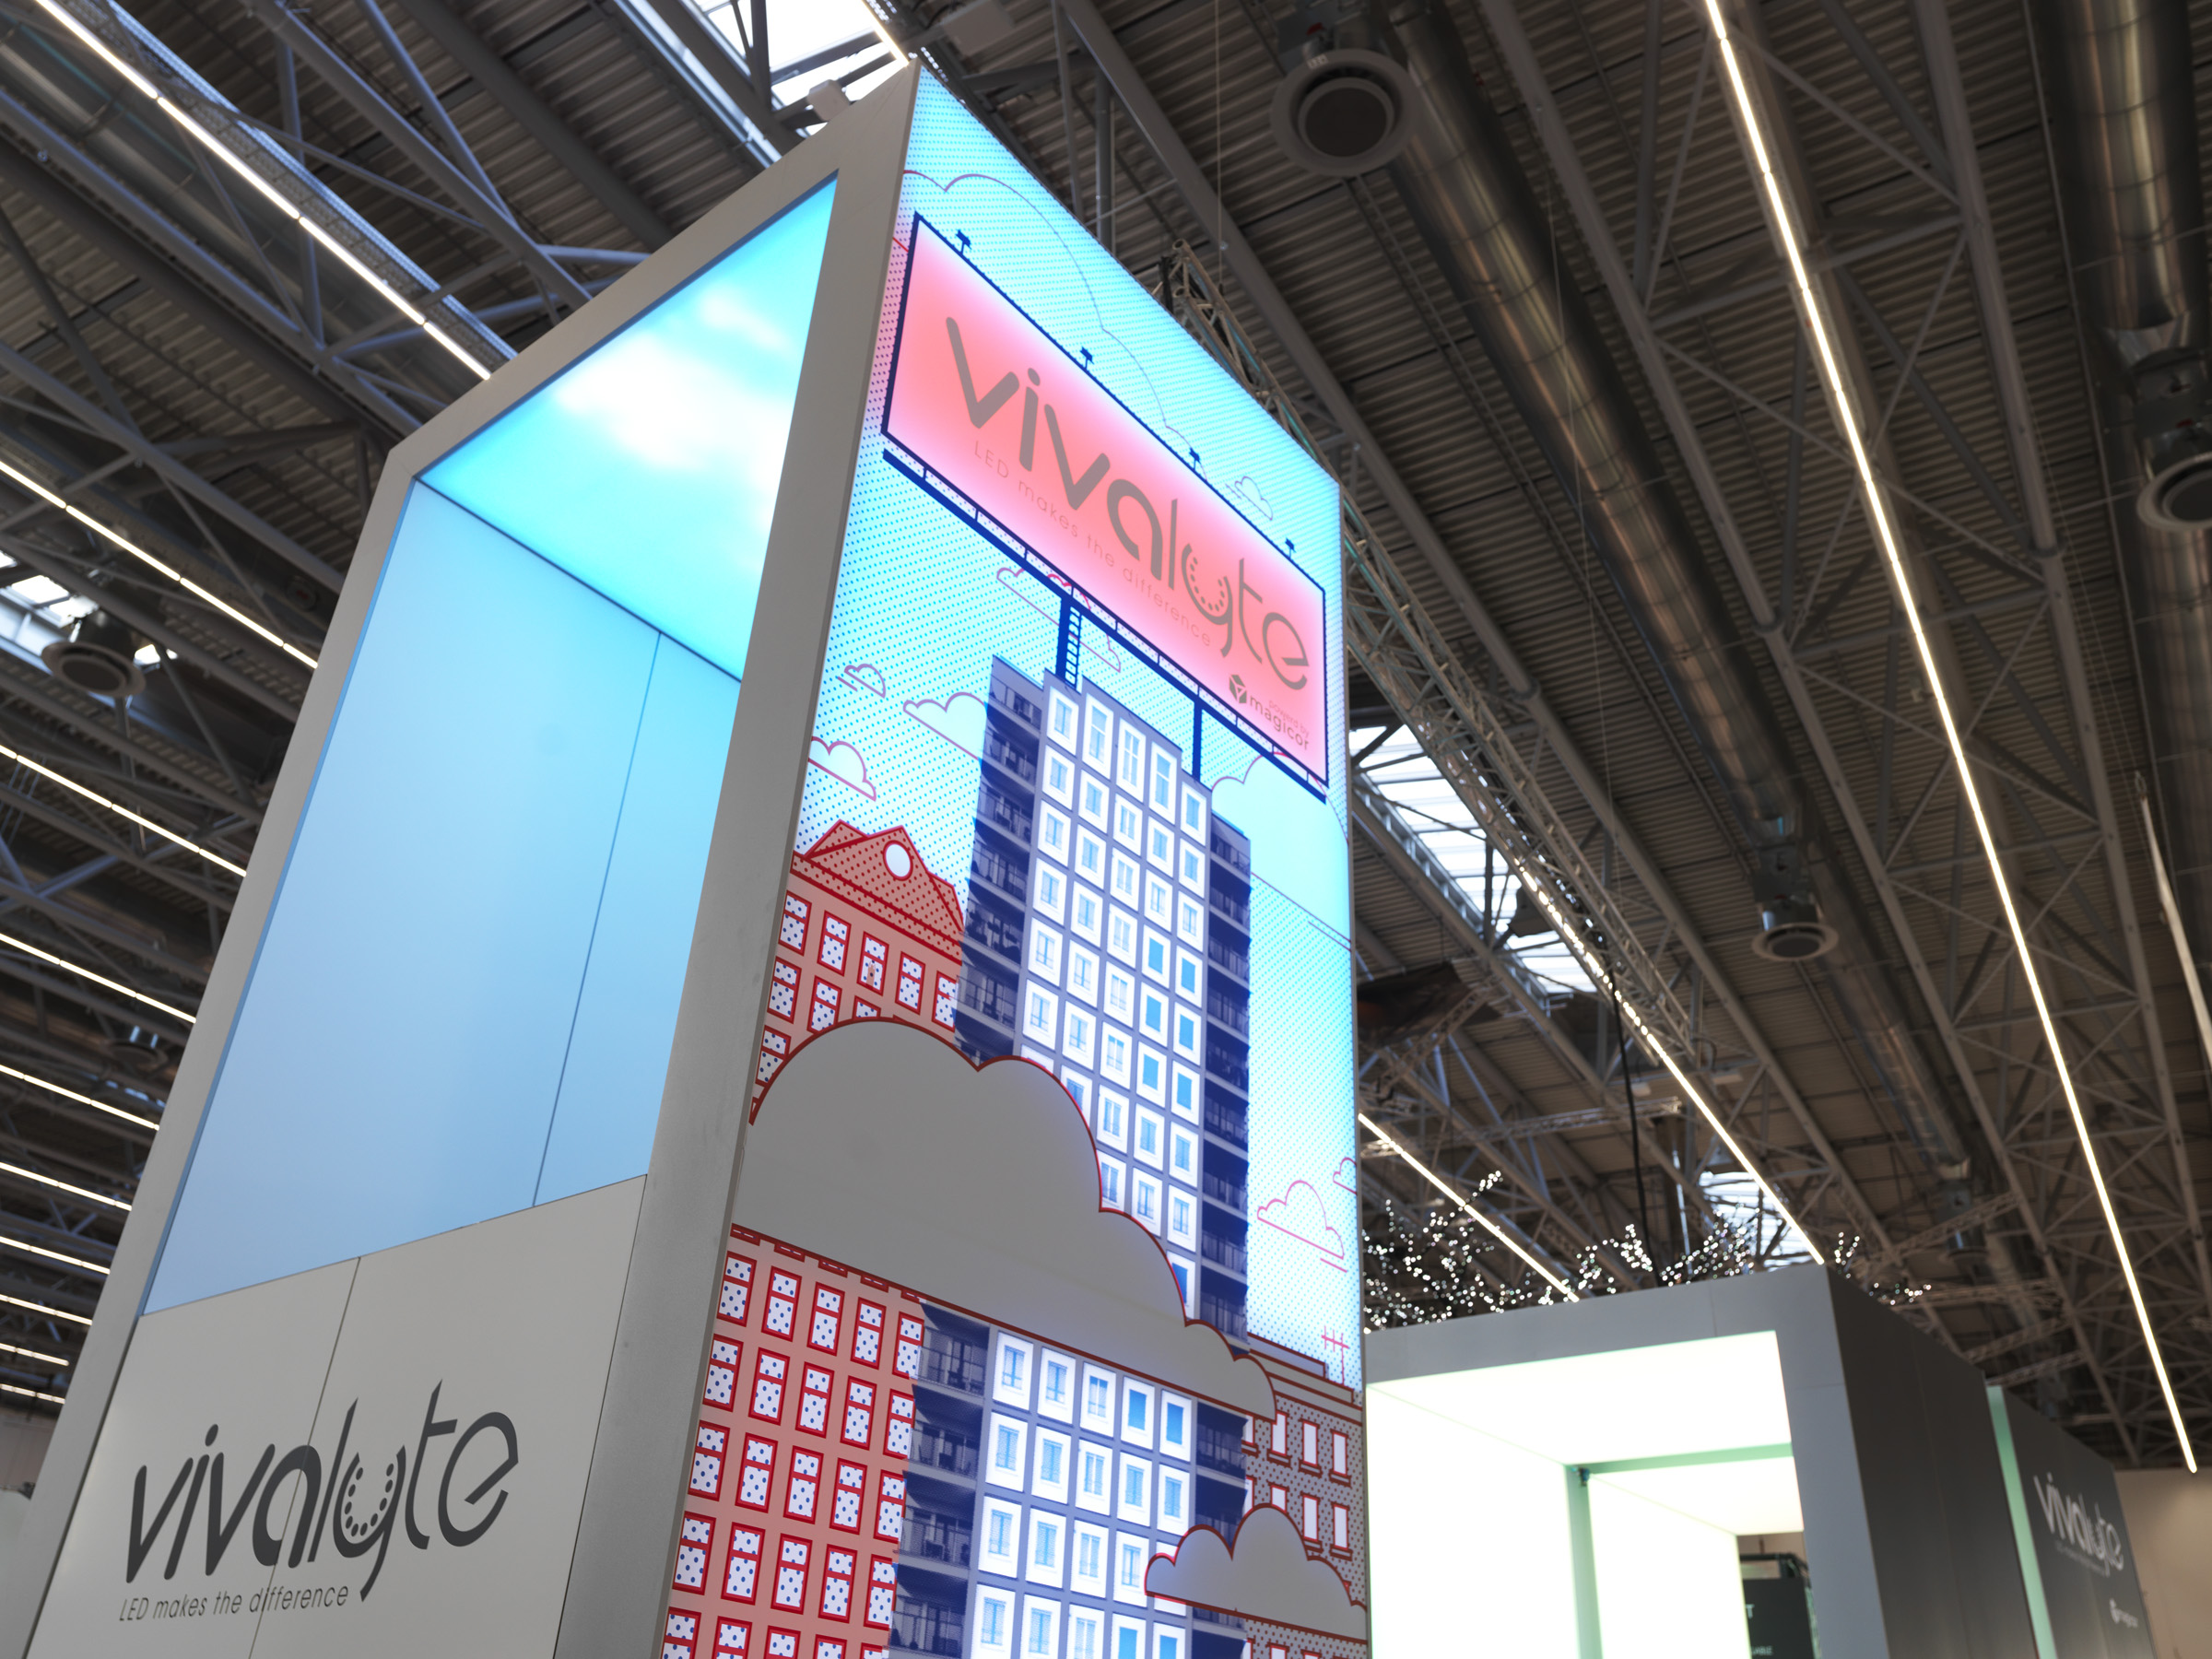 Vivalyte large format print gamification dynamic wall